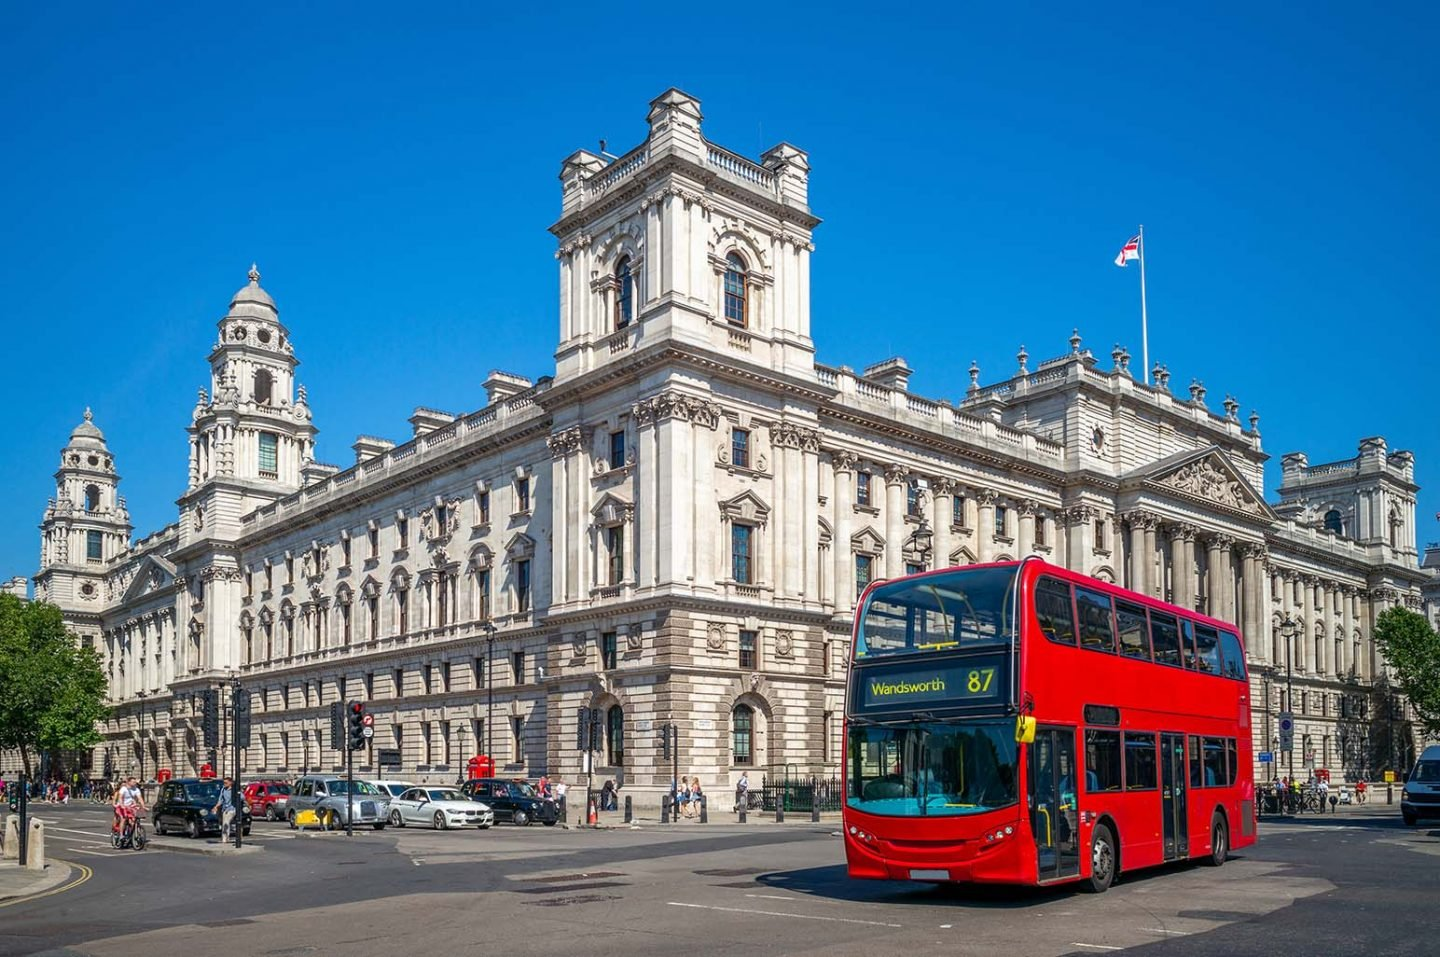 How to Travel London with Ease